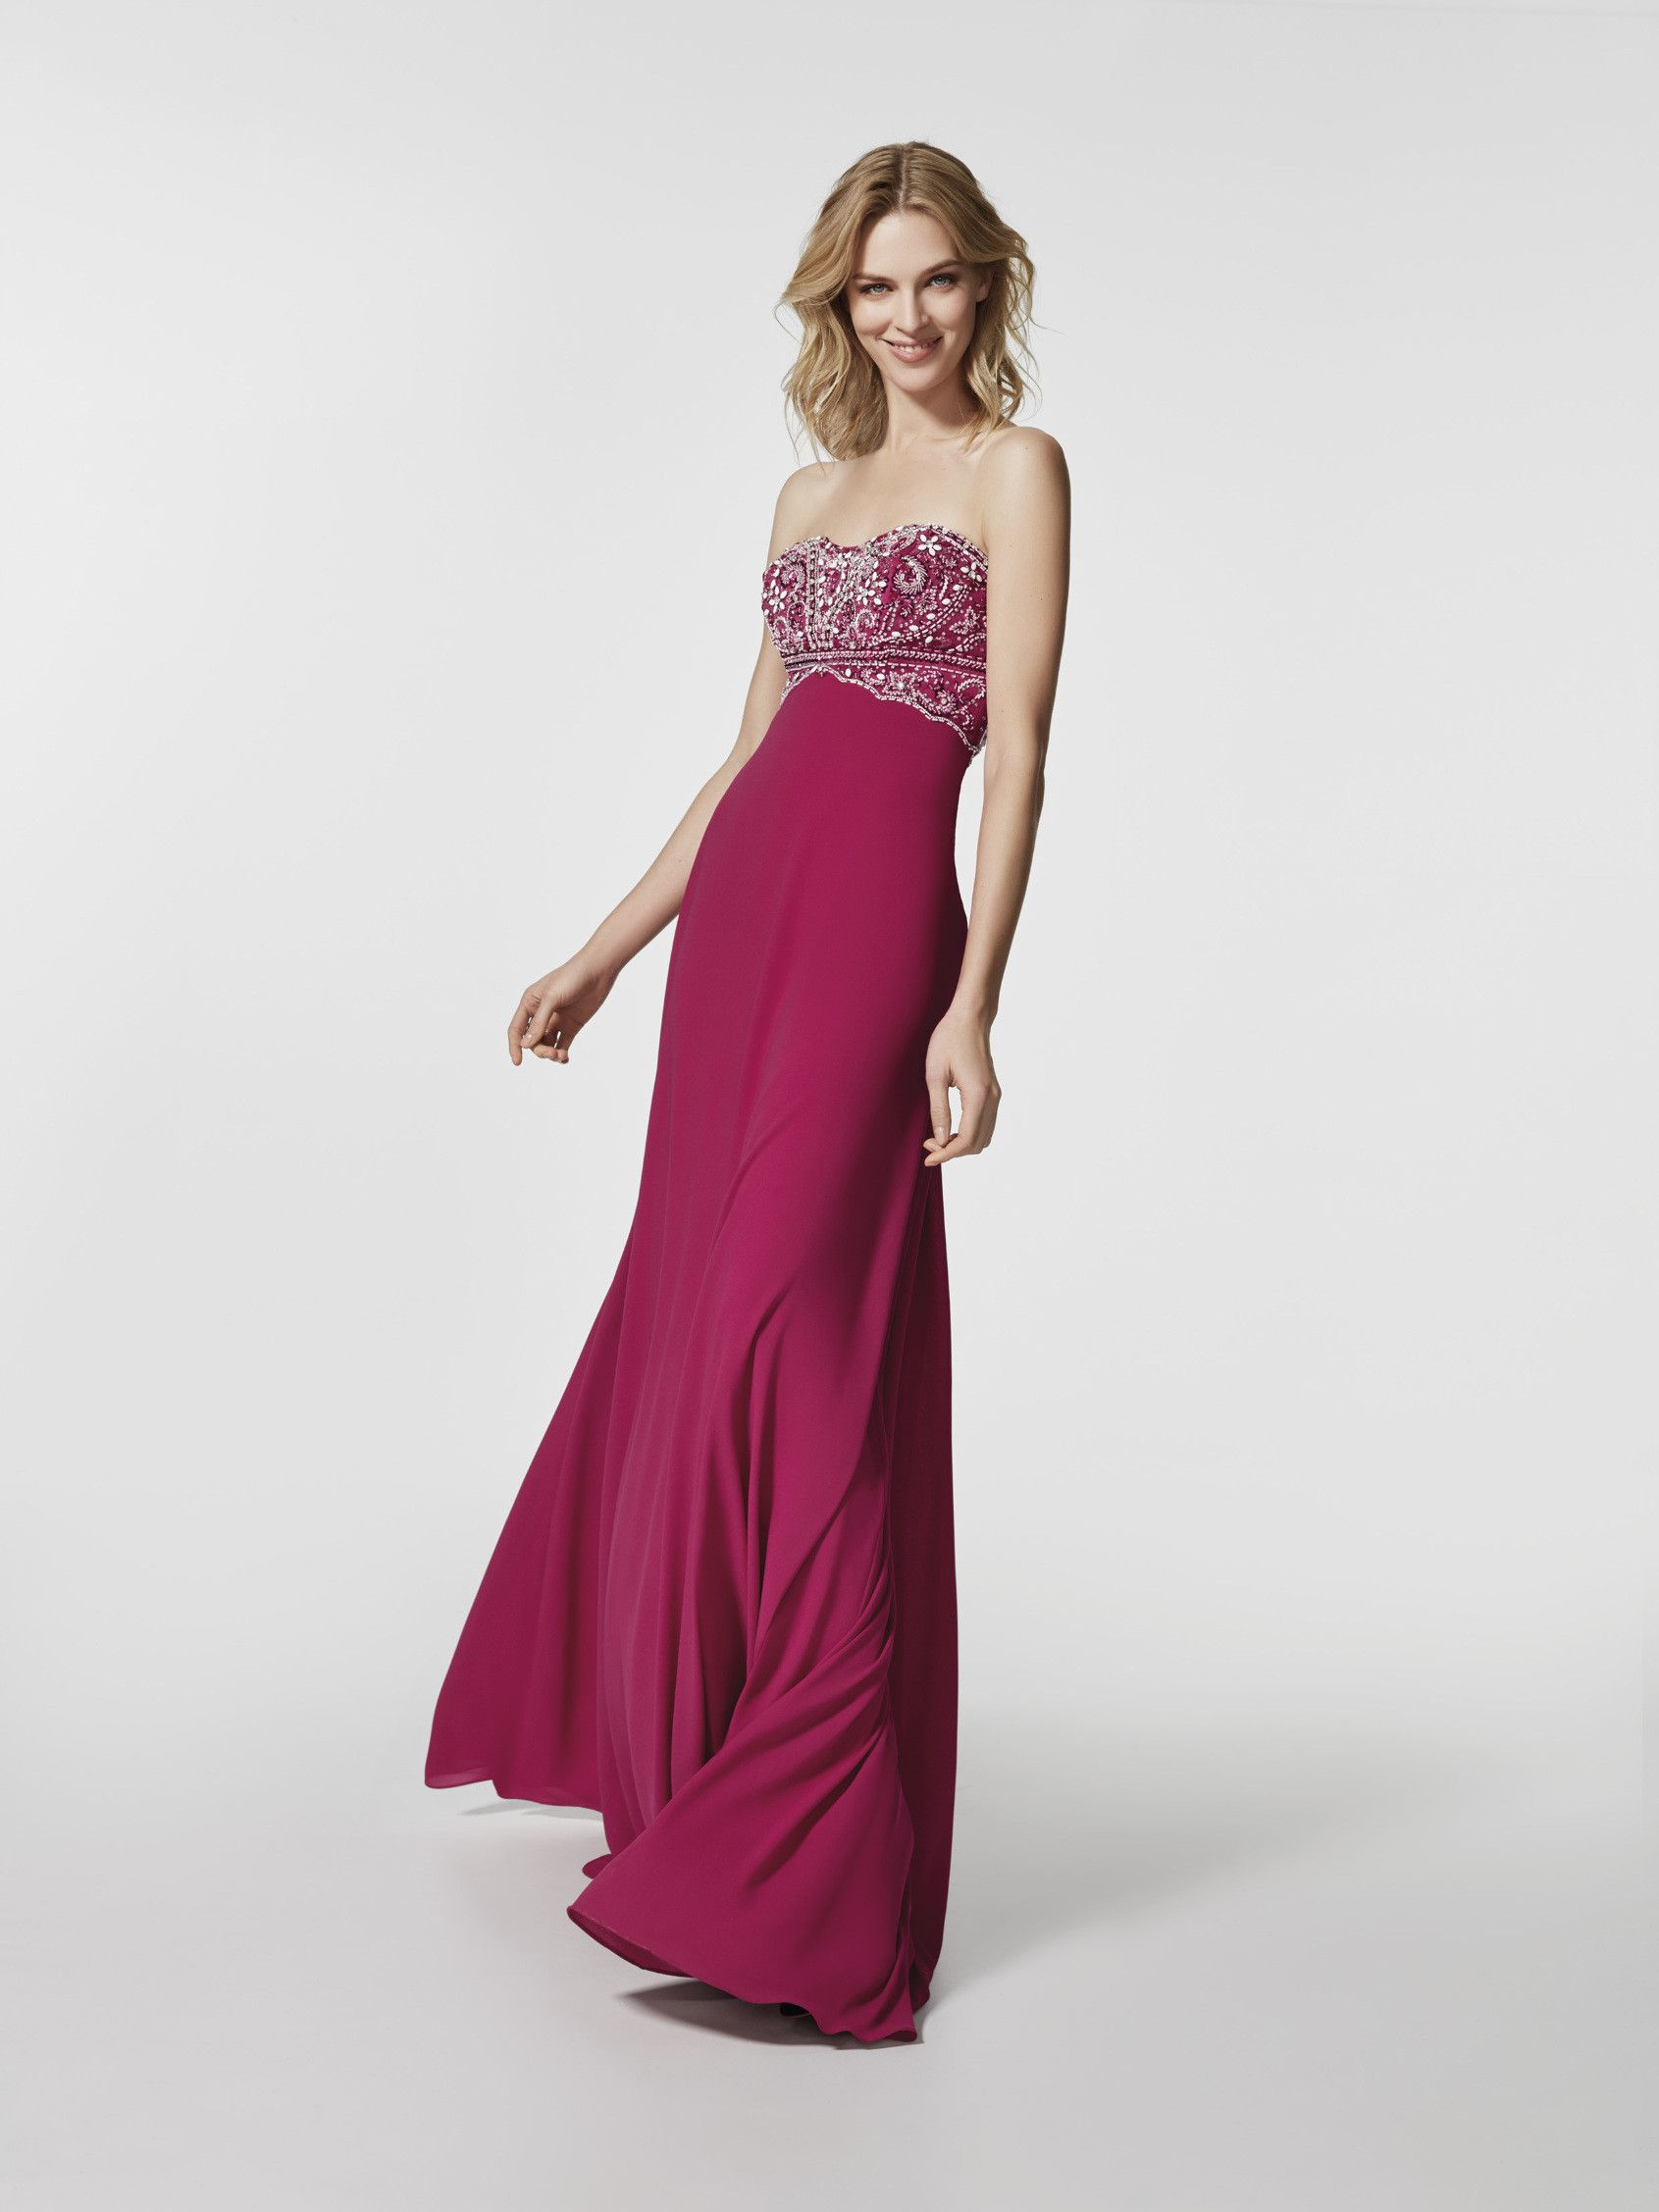 Photo pink cocktail dress (62041) | Wedding Inspirations | Pinterest ...